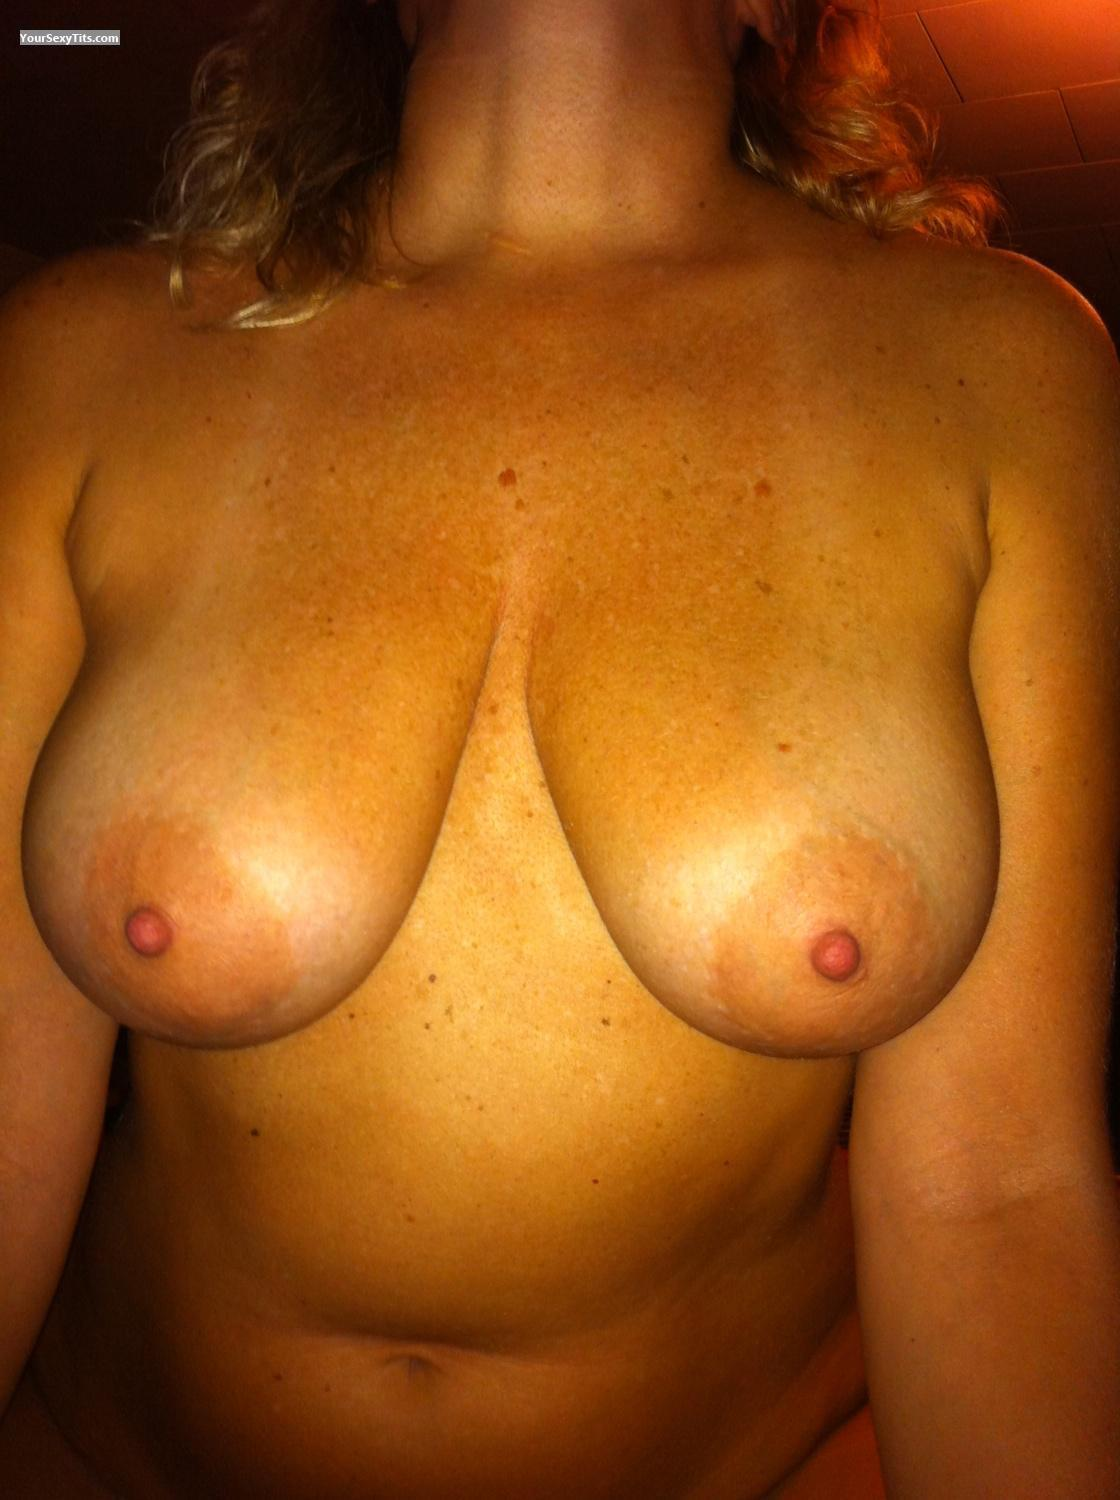 Tit Flash: Medium Tits By IPhone - Babyless from United States